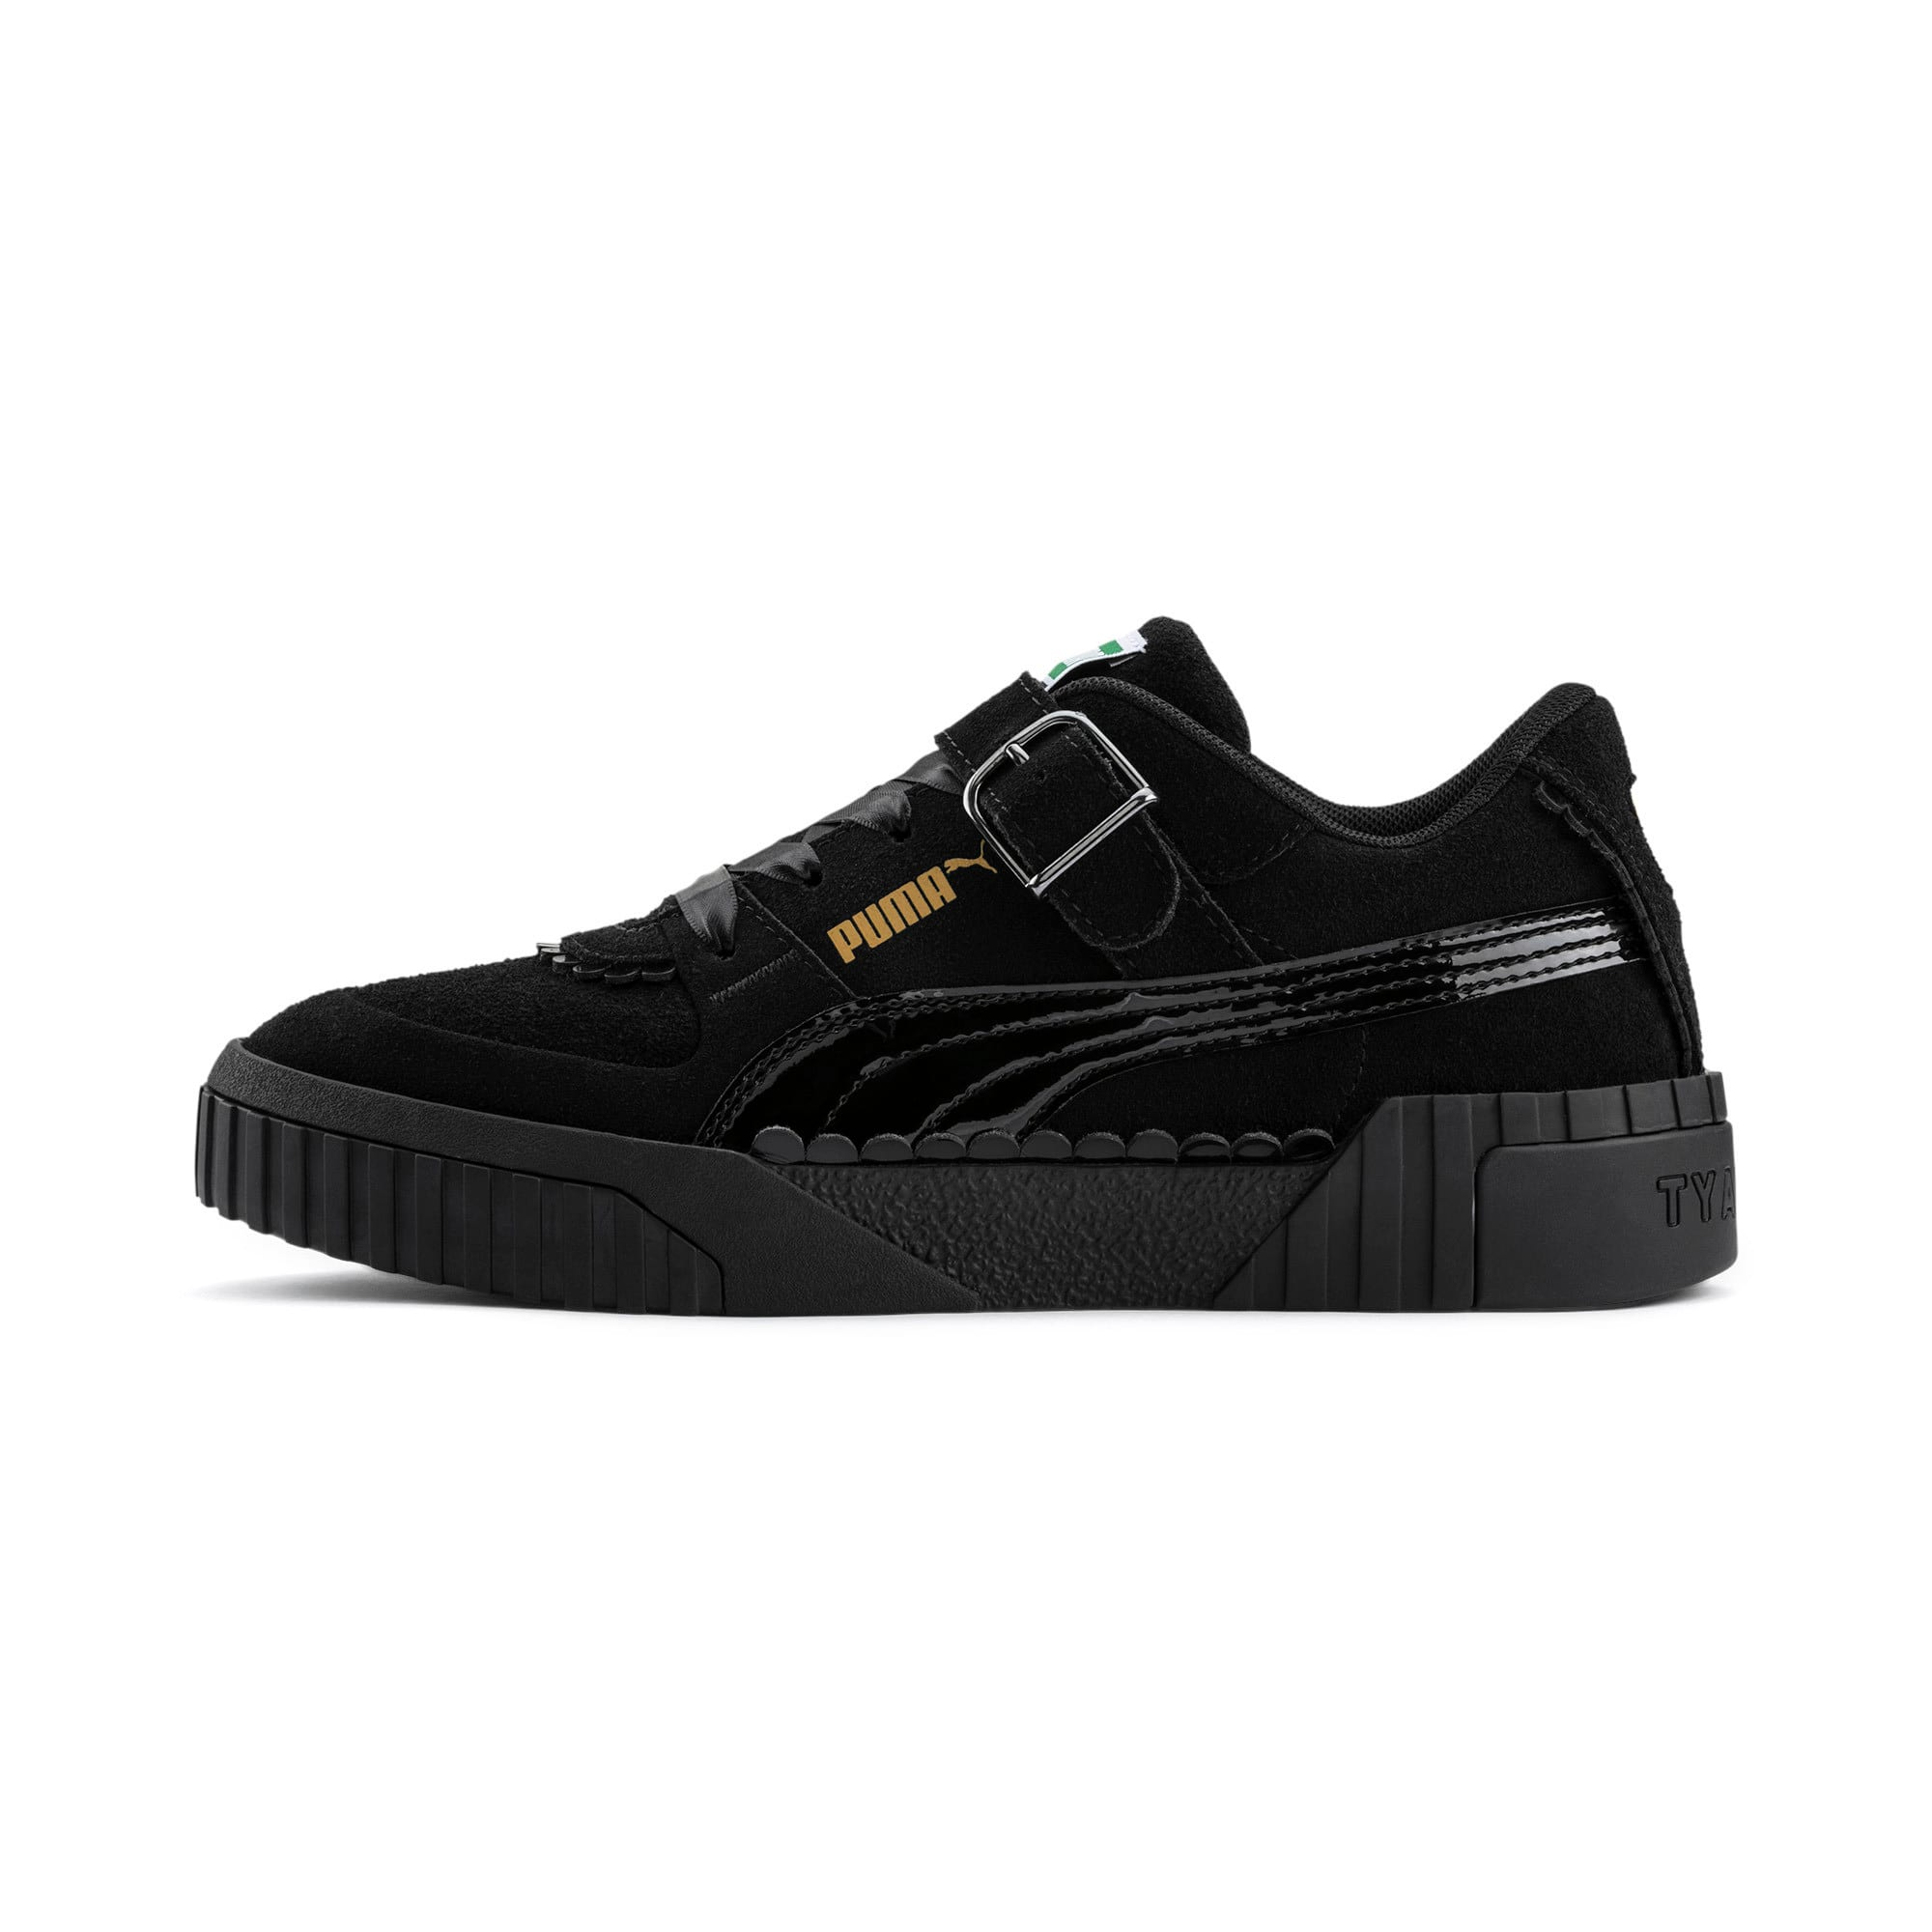 Thumbnail 1 of PUMA x TYAKASHA Cali Women's Sneakers, Puma Black, medium